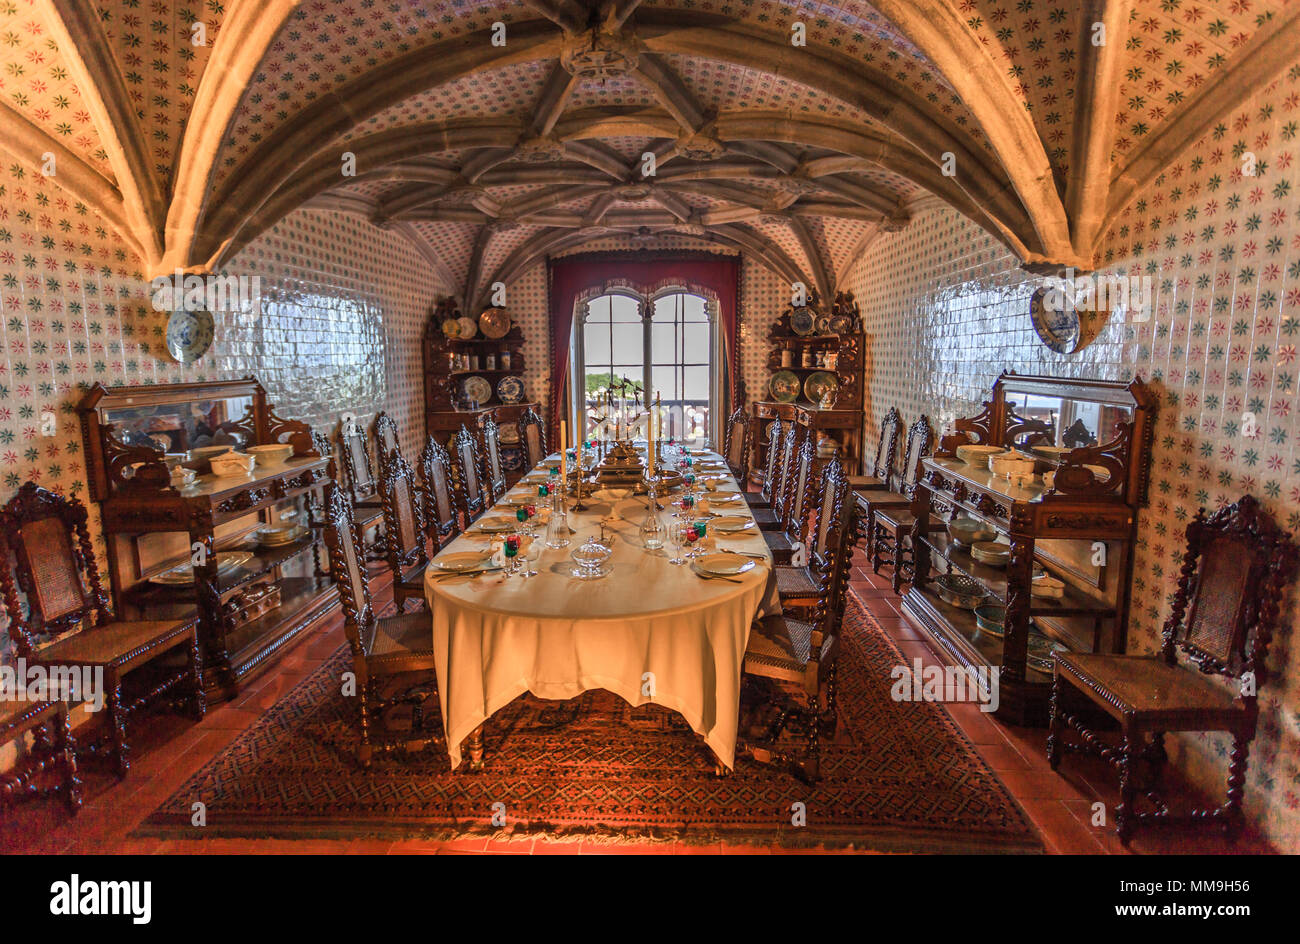 Sintra, Portugal   March 21, 2018: Historic And Traditional Gothic  Furniture Of Dining Room Inside The Famous Pena Palace Of Sintra